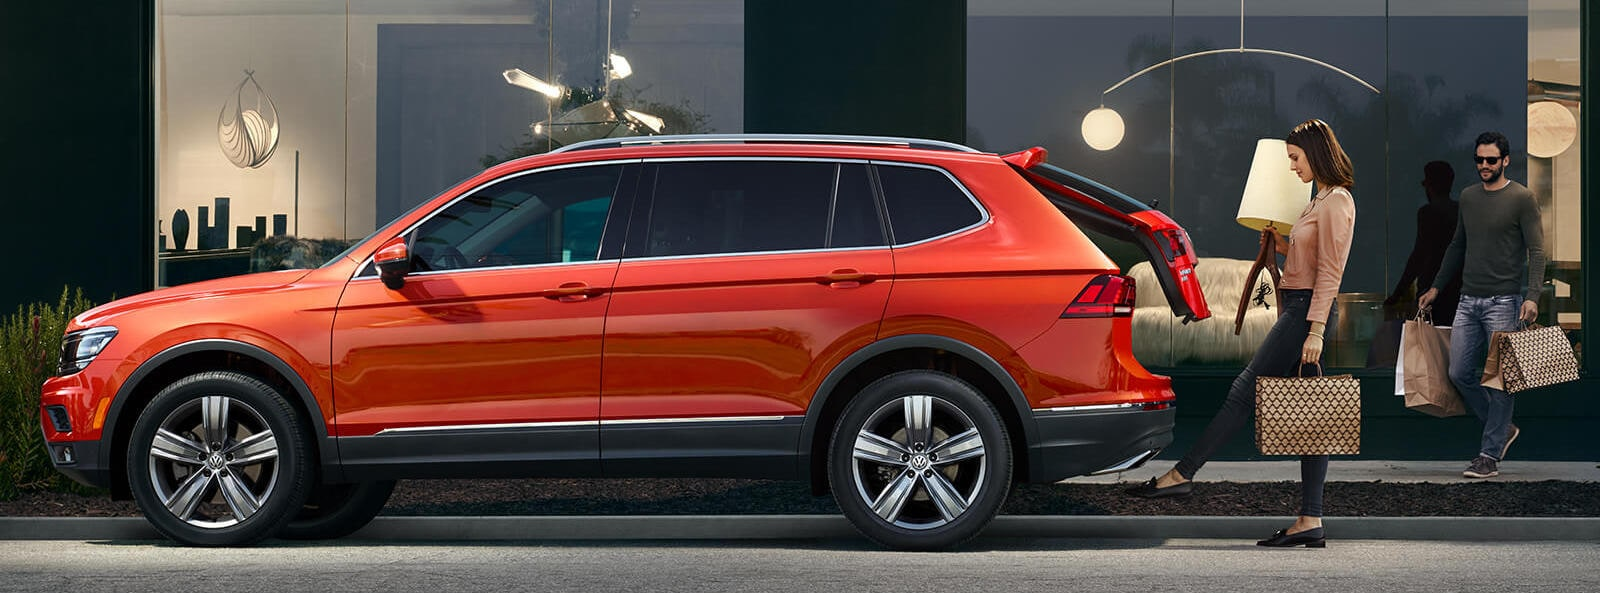 2019 Volkswagen Tiguan SUV vs the competition at our Boise Volkswagen dealership near Nampa